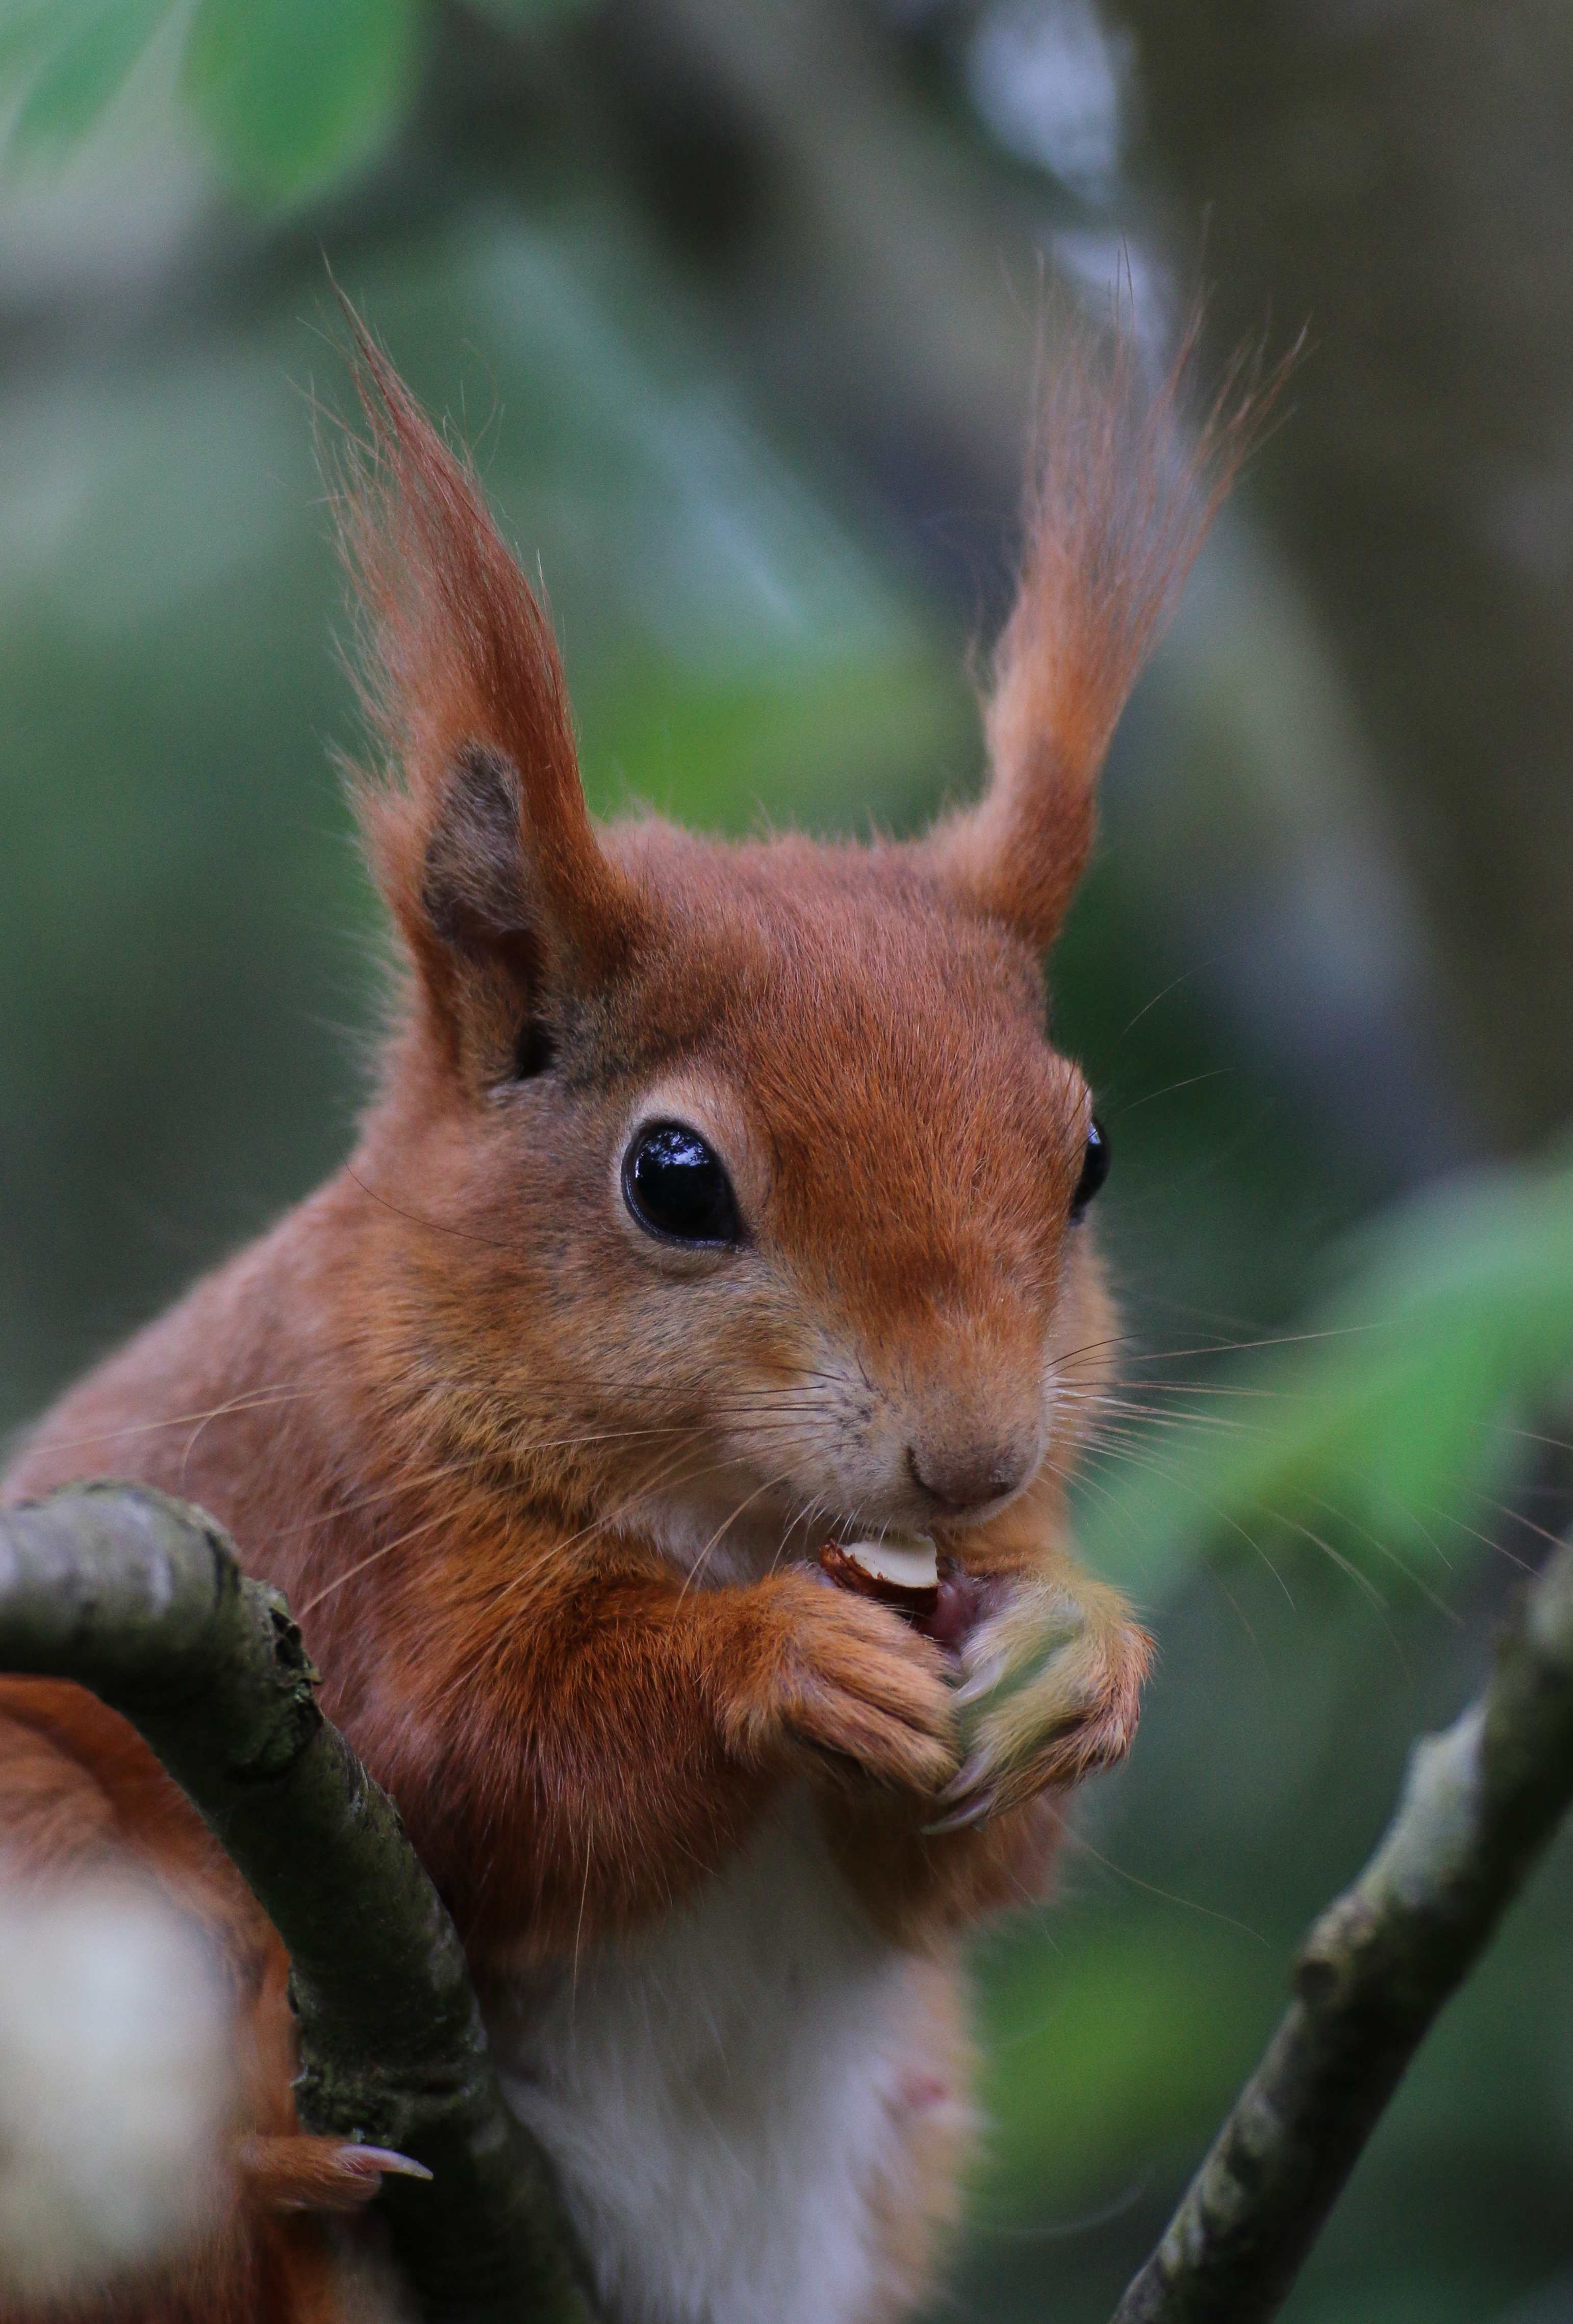 109819 download wallpaper Animals, Squirrel, Rodent, Nice, Sweetheart, Nut screensavers and pictures for free